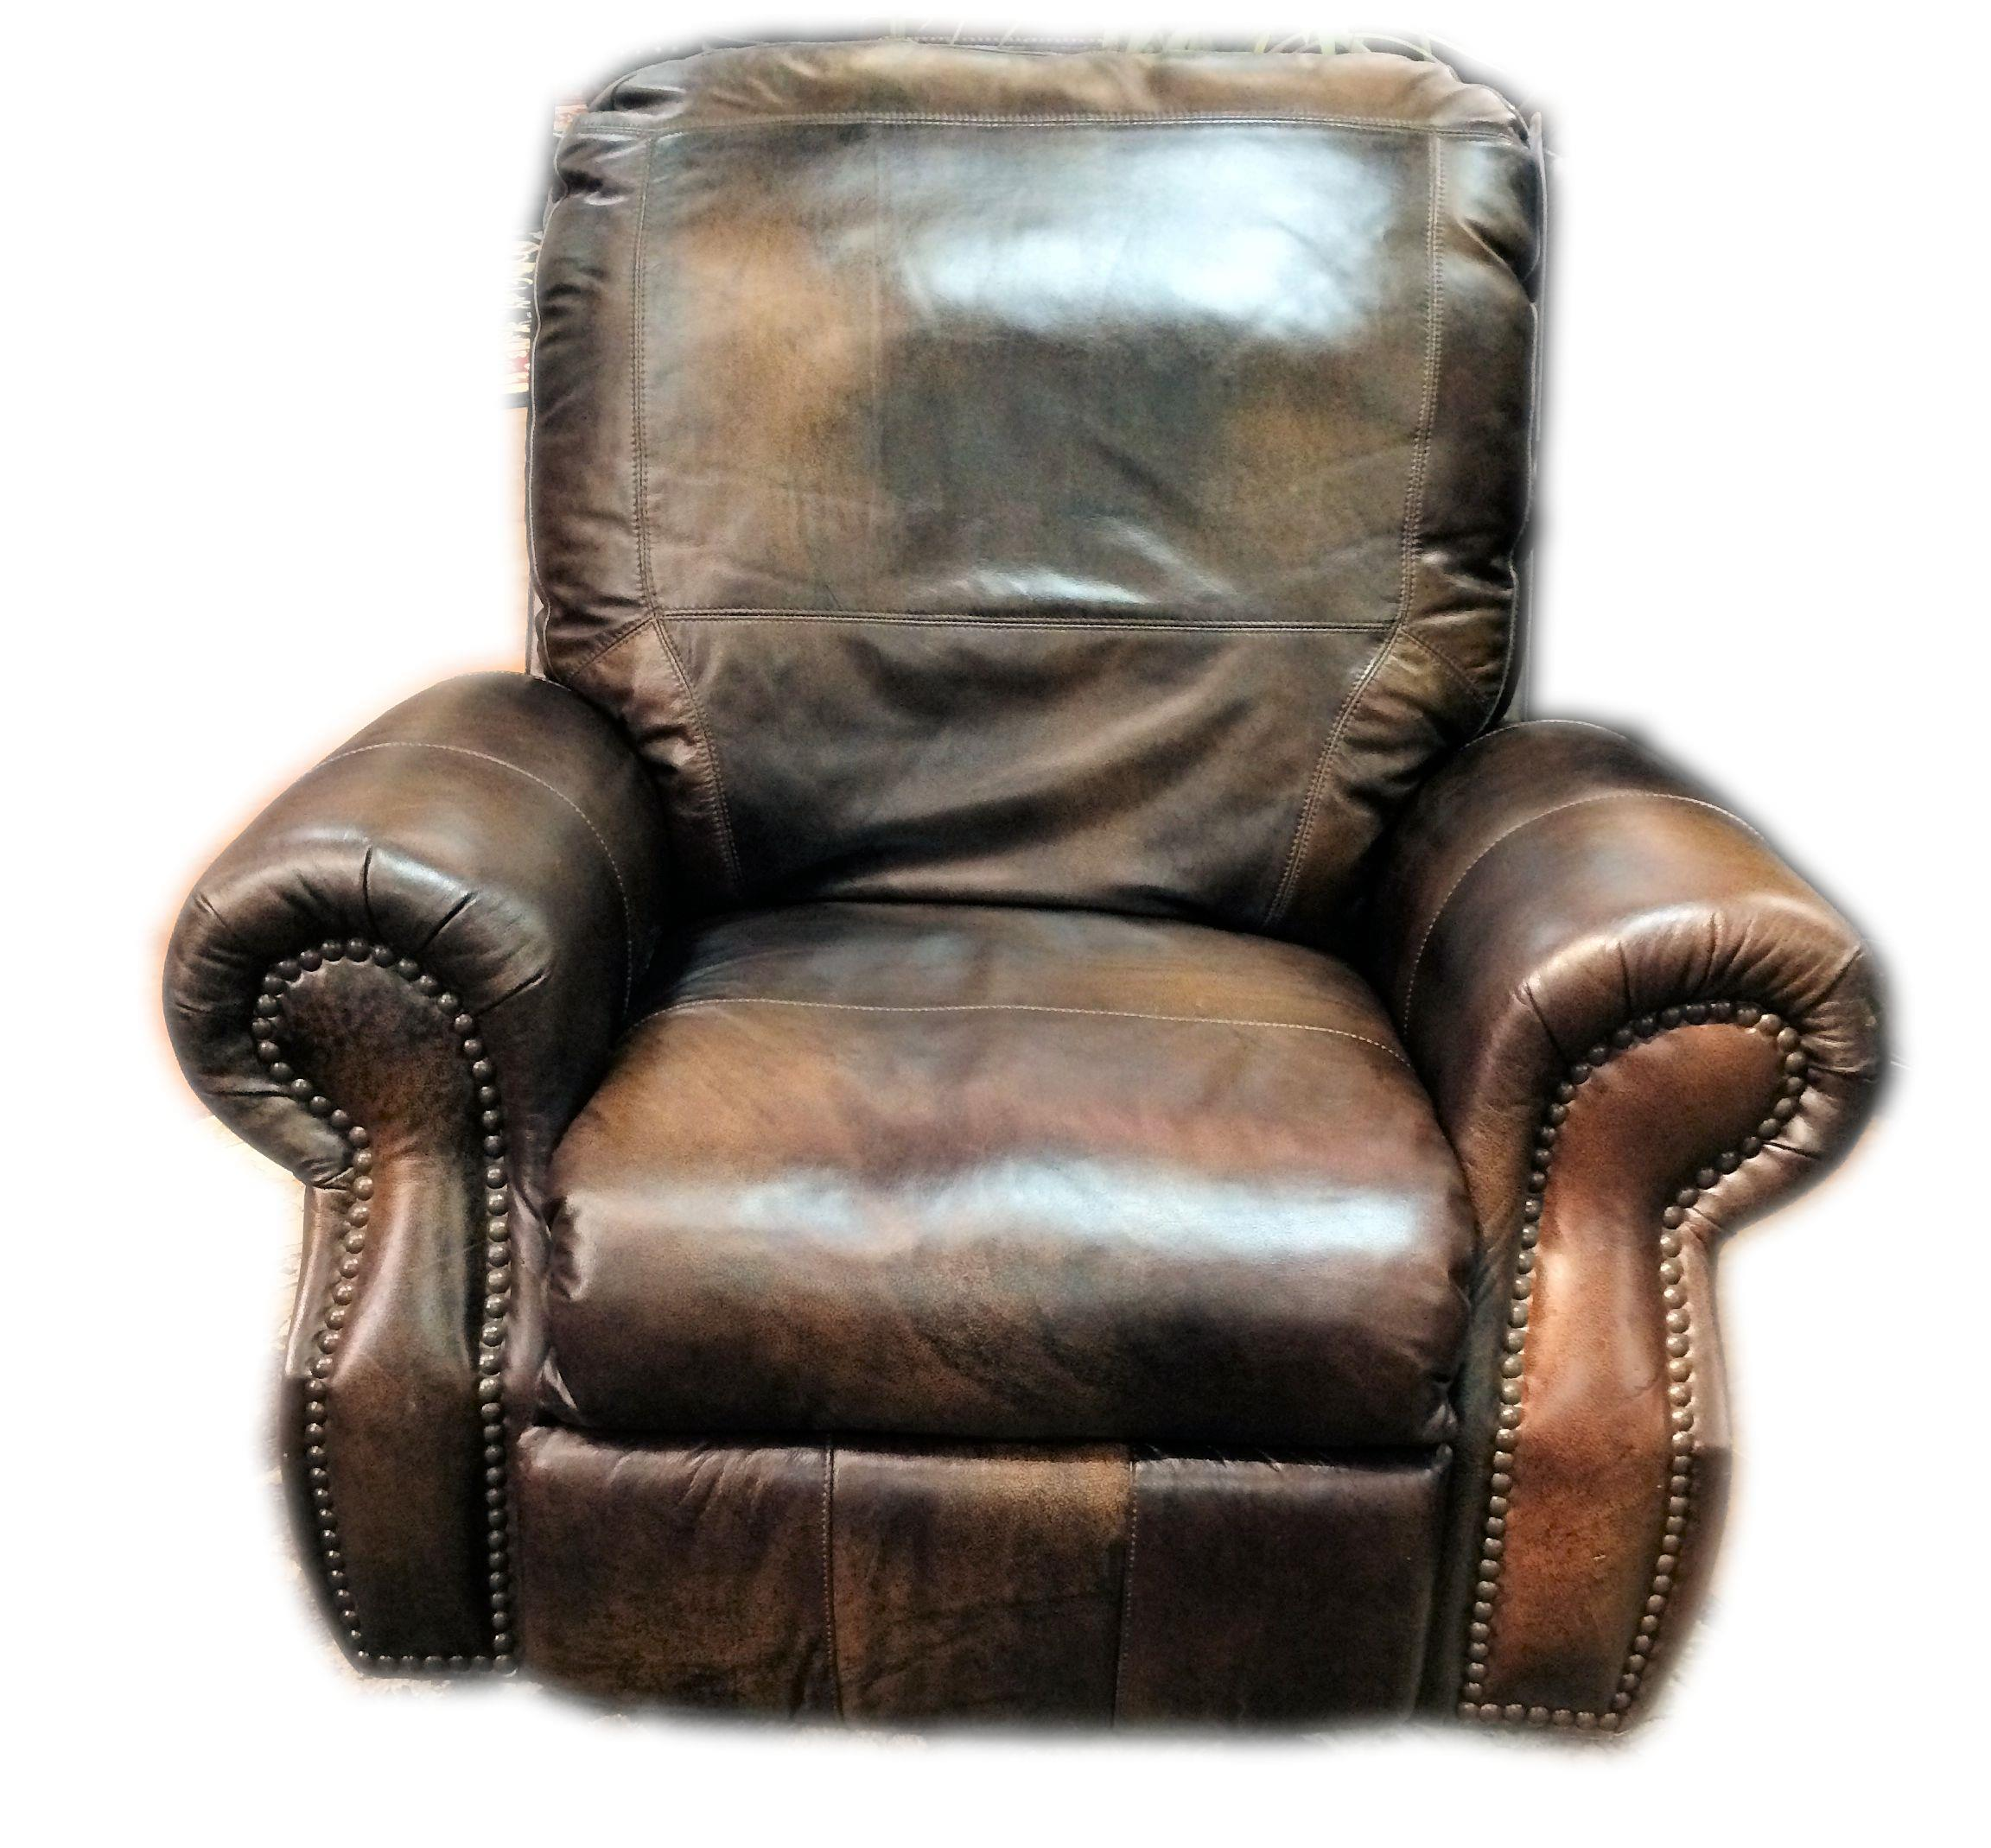 recliners height home bernhardt threshold forrest item morris leather products width forrestforrest trim recliner three way